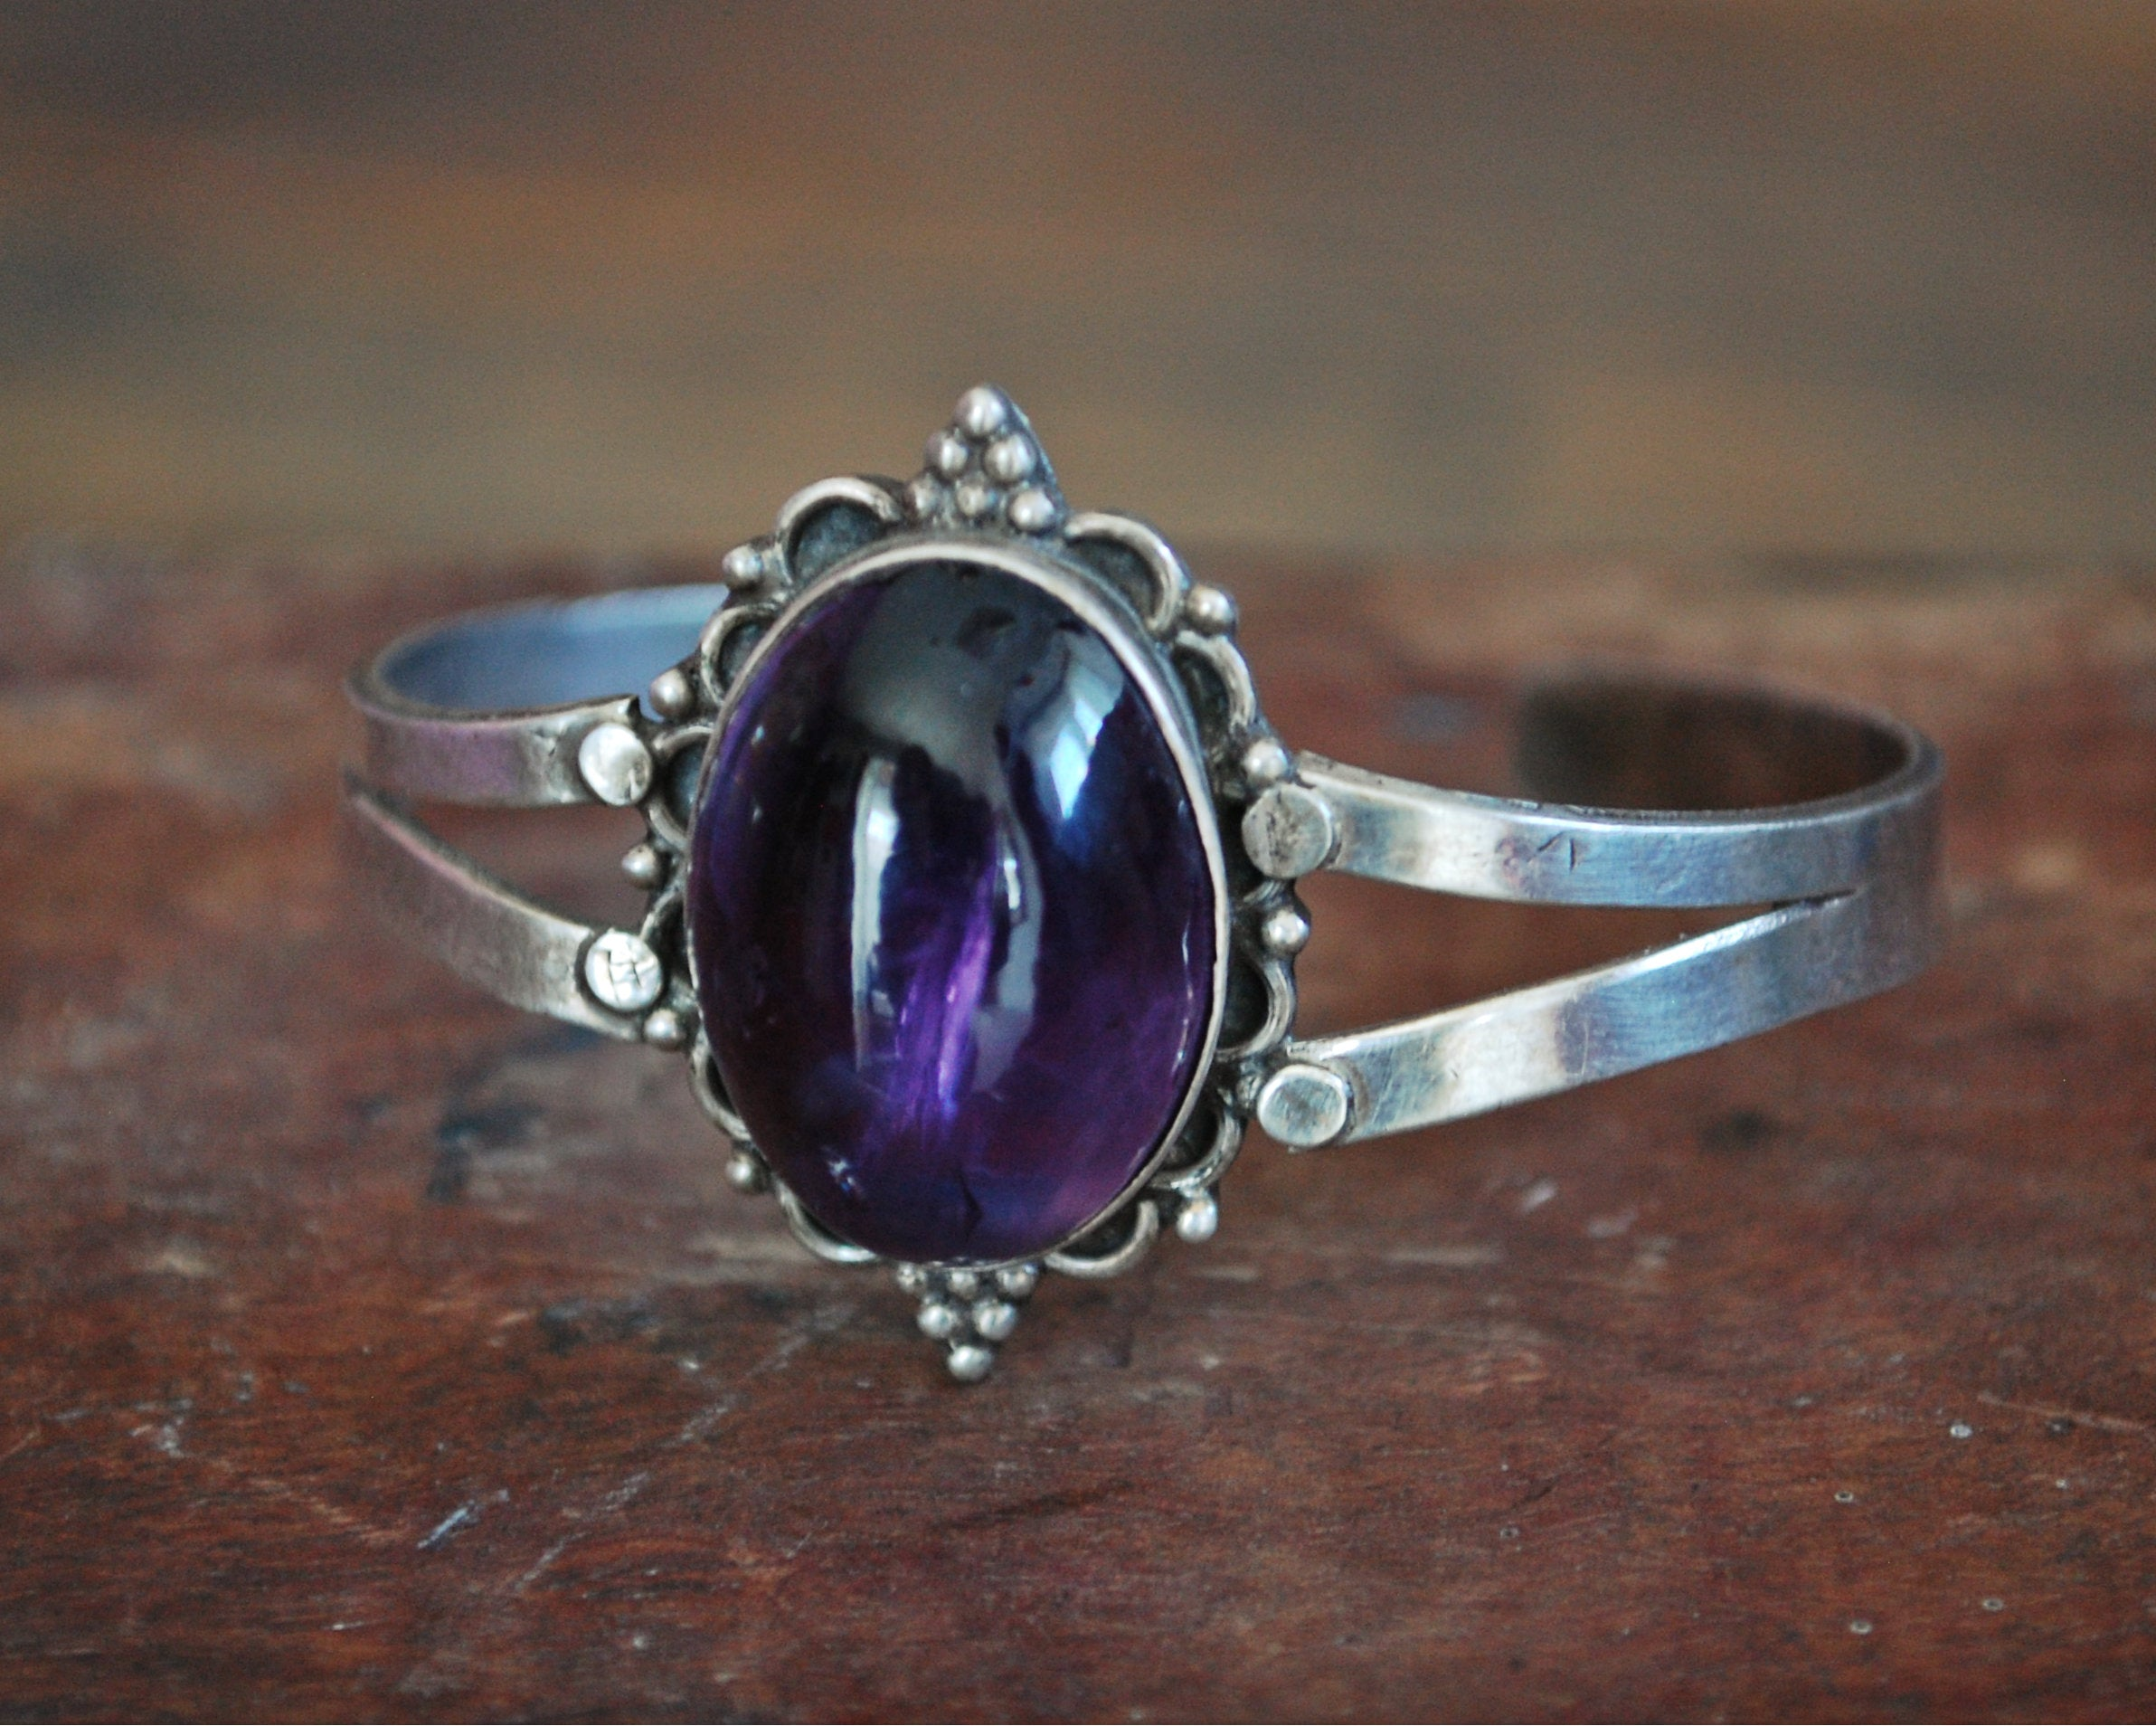 Ethnic Amethyst Cuff Bracelet from India